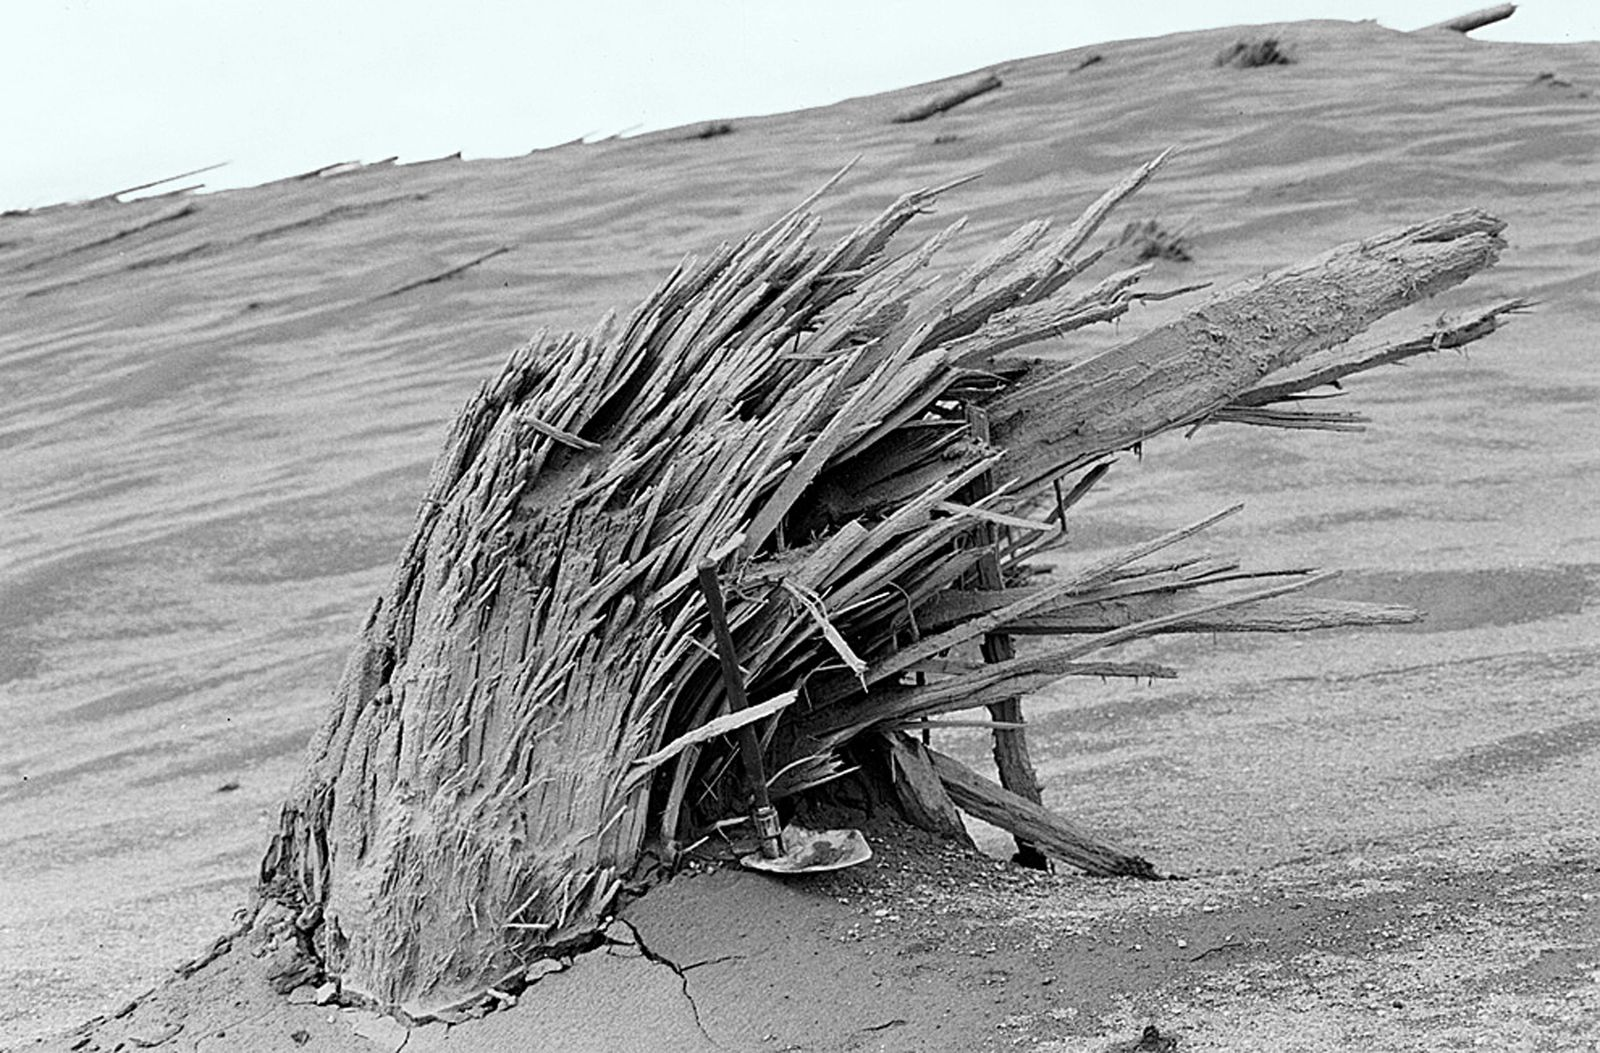 St. Helens - a tree cut by force of the blast (the shovel gives the scale) - photo USGS / S.W.Kieffer